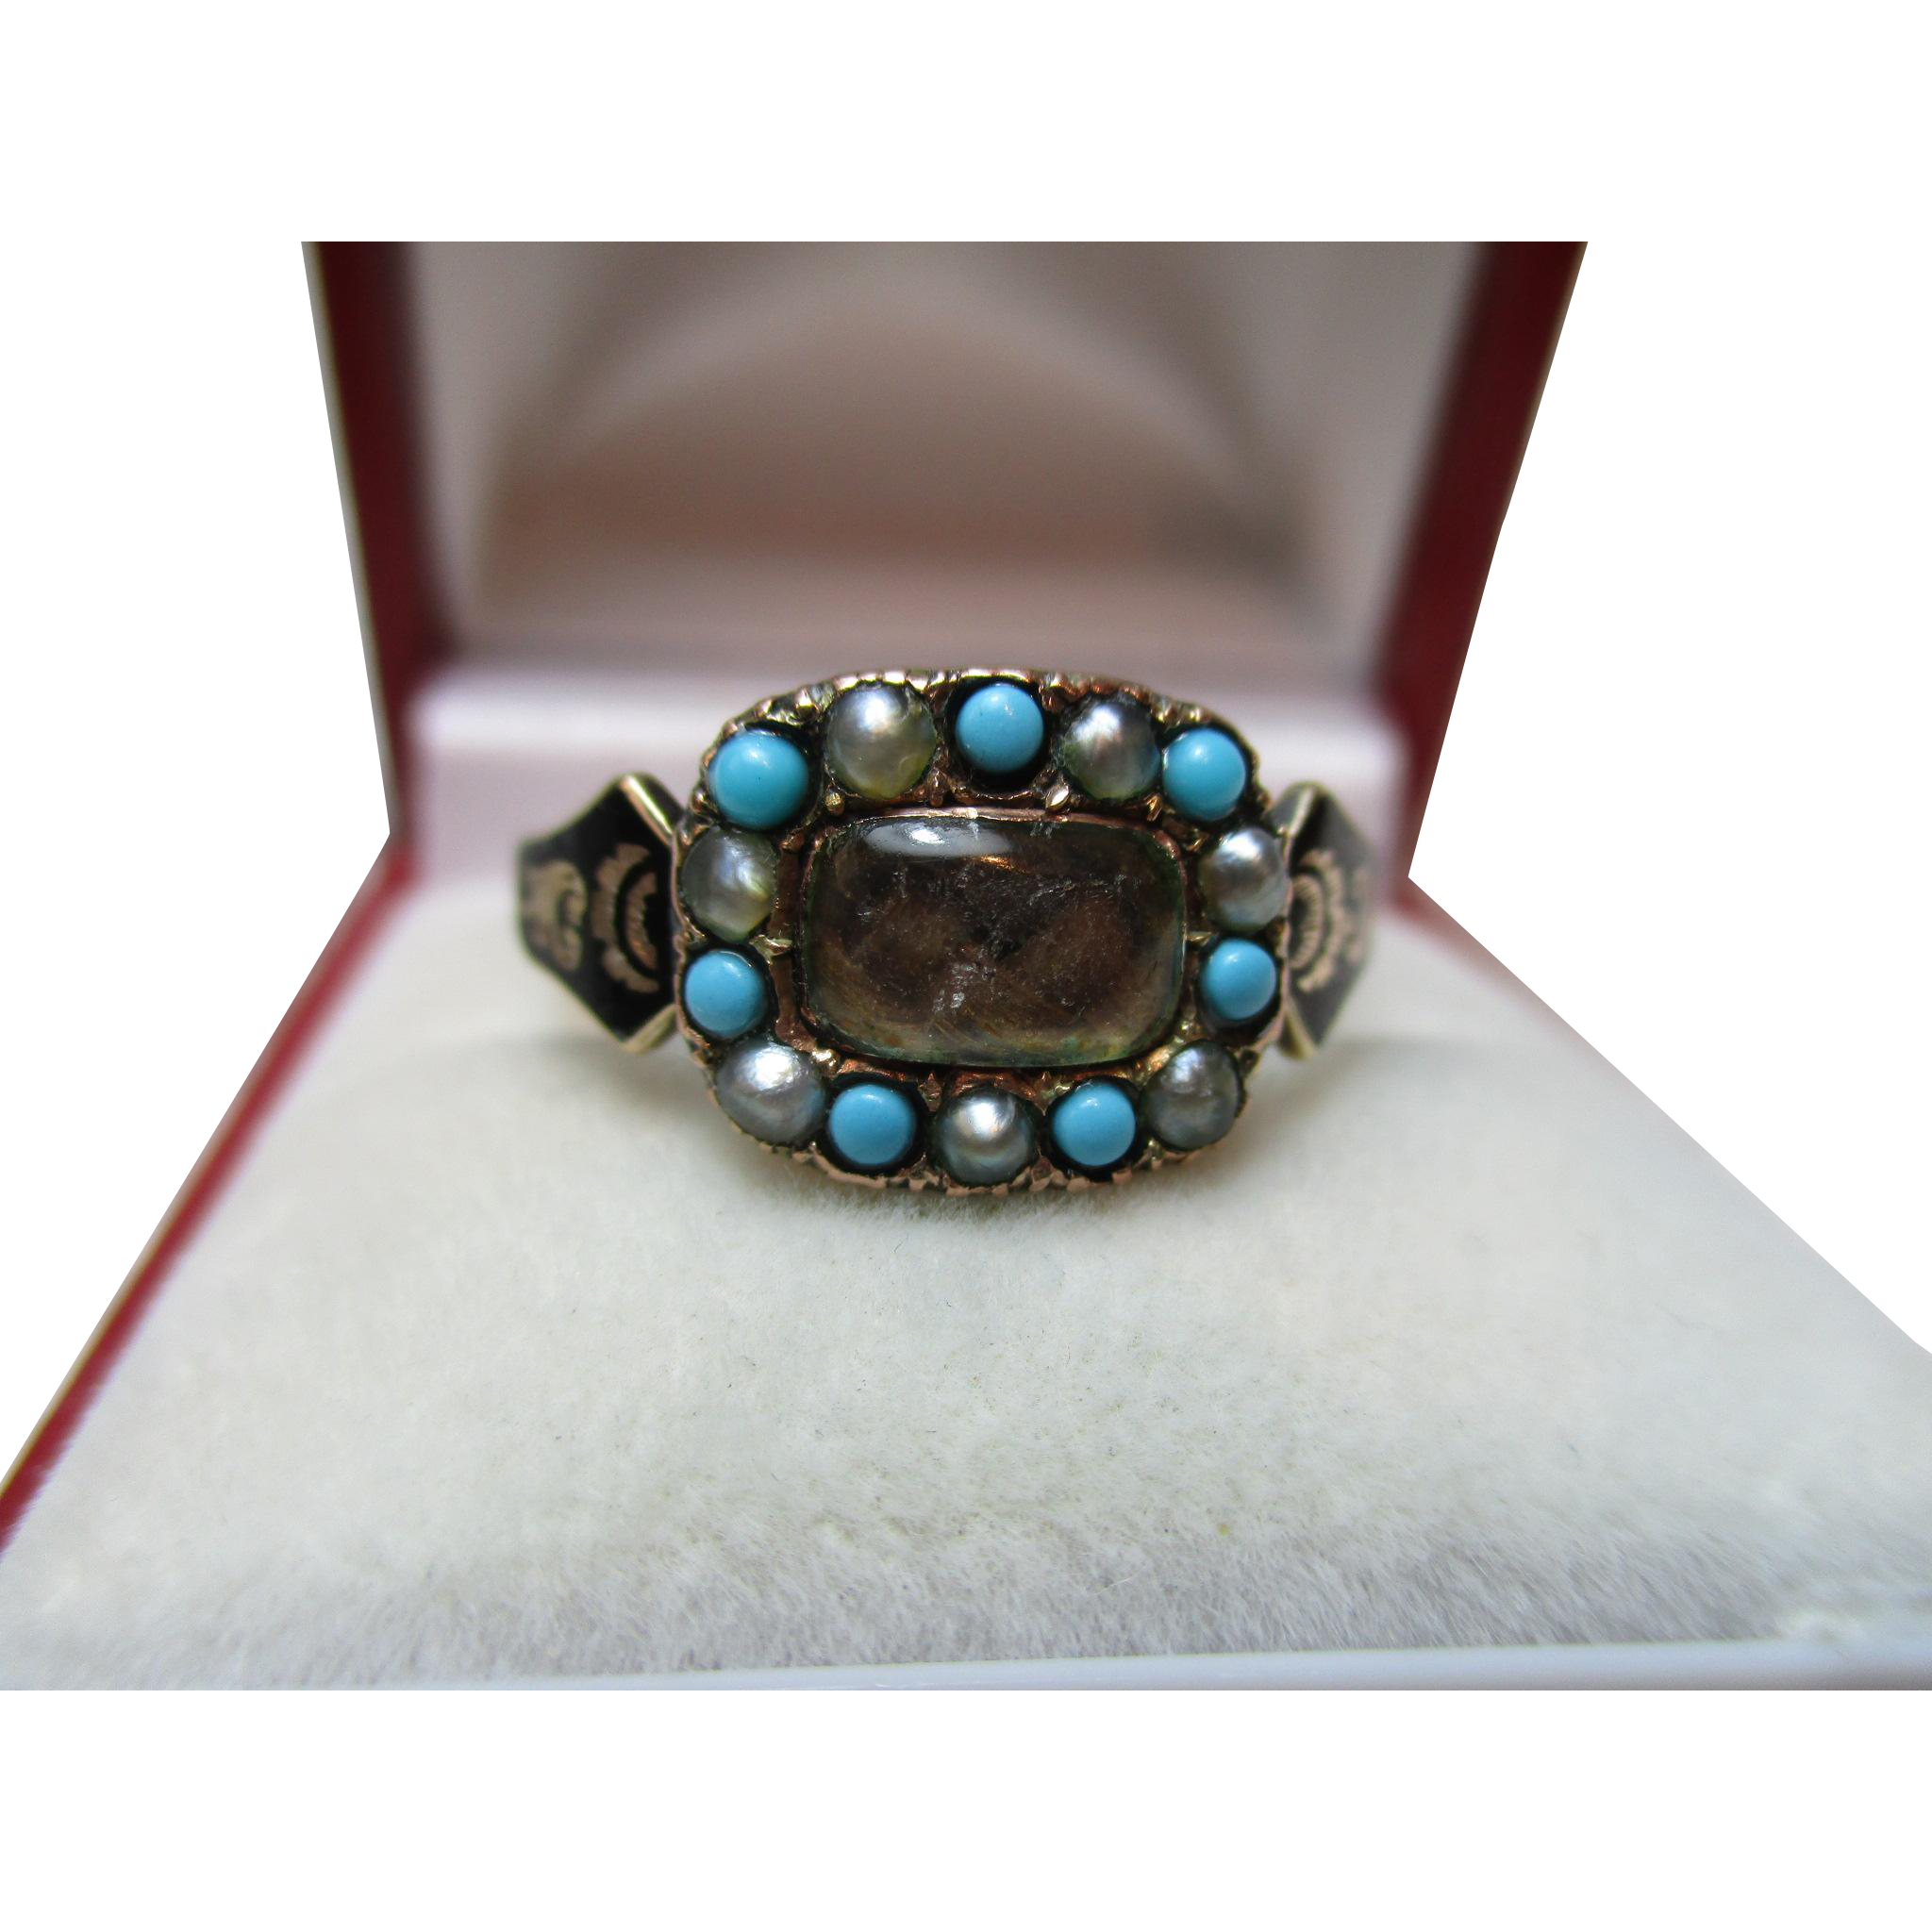 Exquisite Georgian 15ct Solid Gold Black Enamel, Turquoise + Split Seed-Pearl Gemstone 'Memorial' Ring